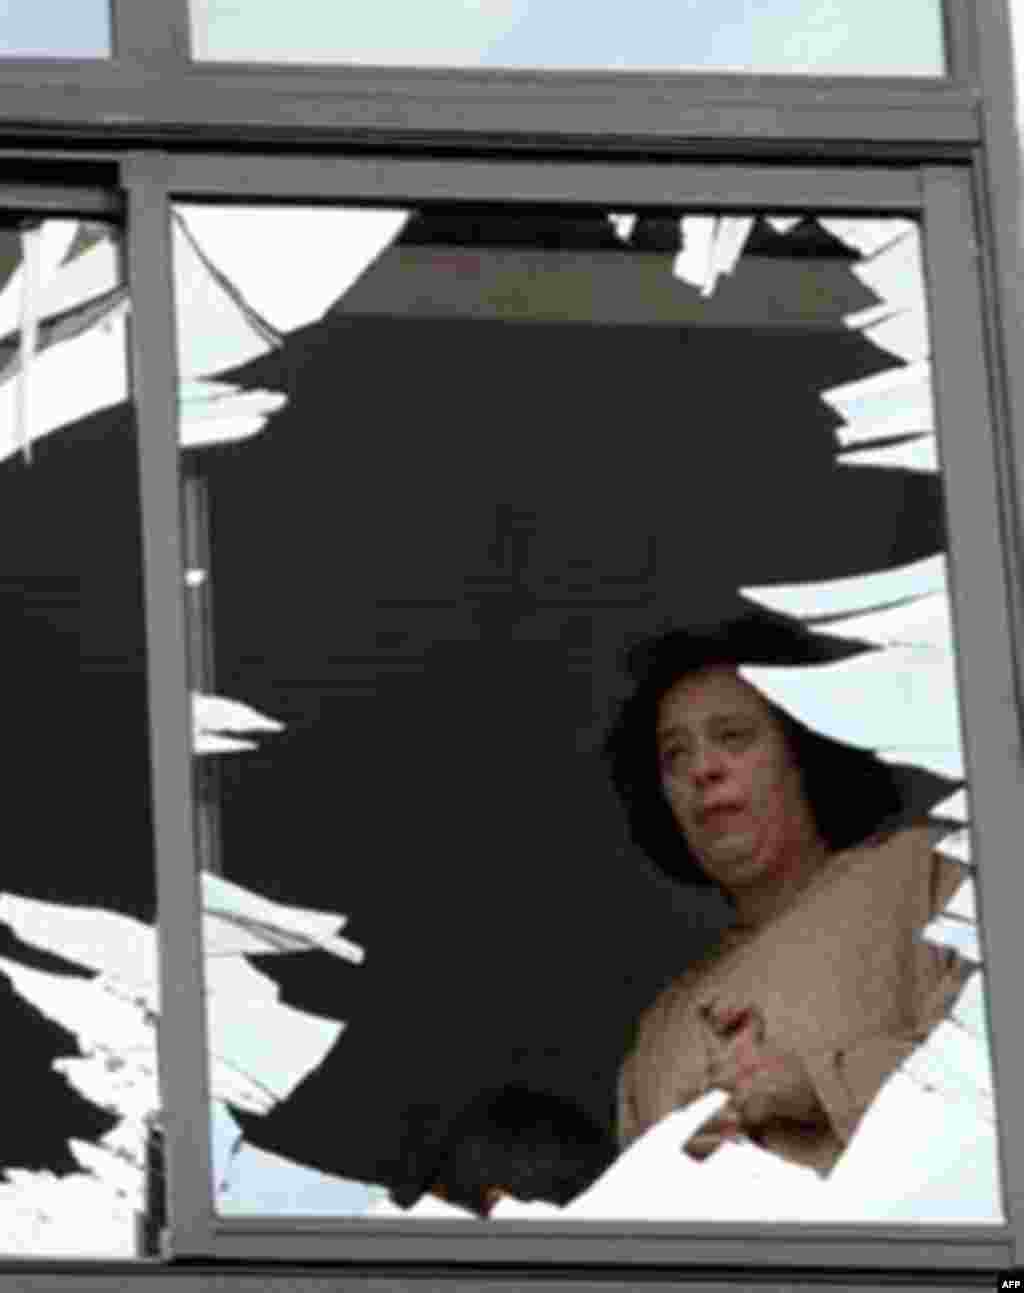 A woman surveys the damage caused by a bomb at a Jewish center in Casablanca, Morocco, on May 17, 2003 (AFP) - At least five bombs exploded simultaneously in Casablanca, Morocco, on May 17, 2003, killing 45 people and injuring scores more. The authorities blame the attacks on Al-Qaeda-affiliated terrorists.